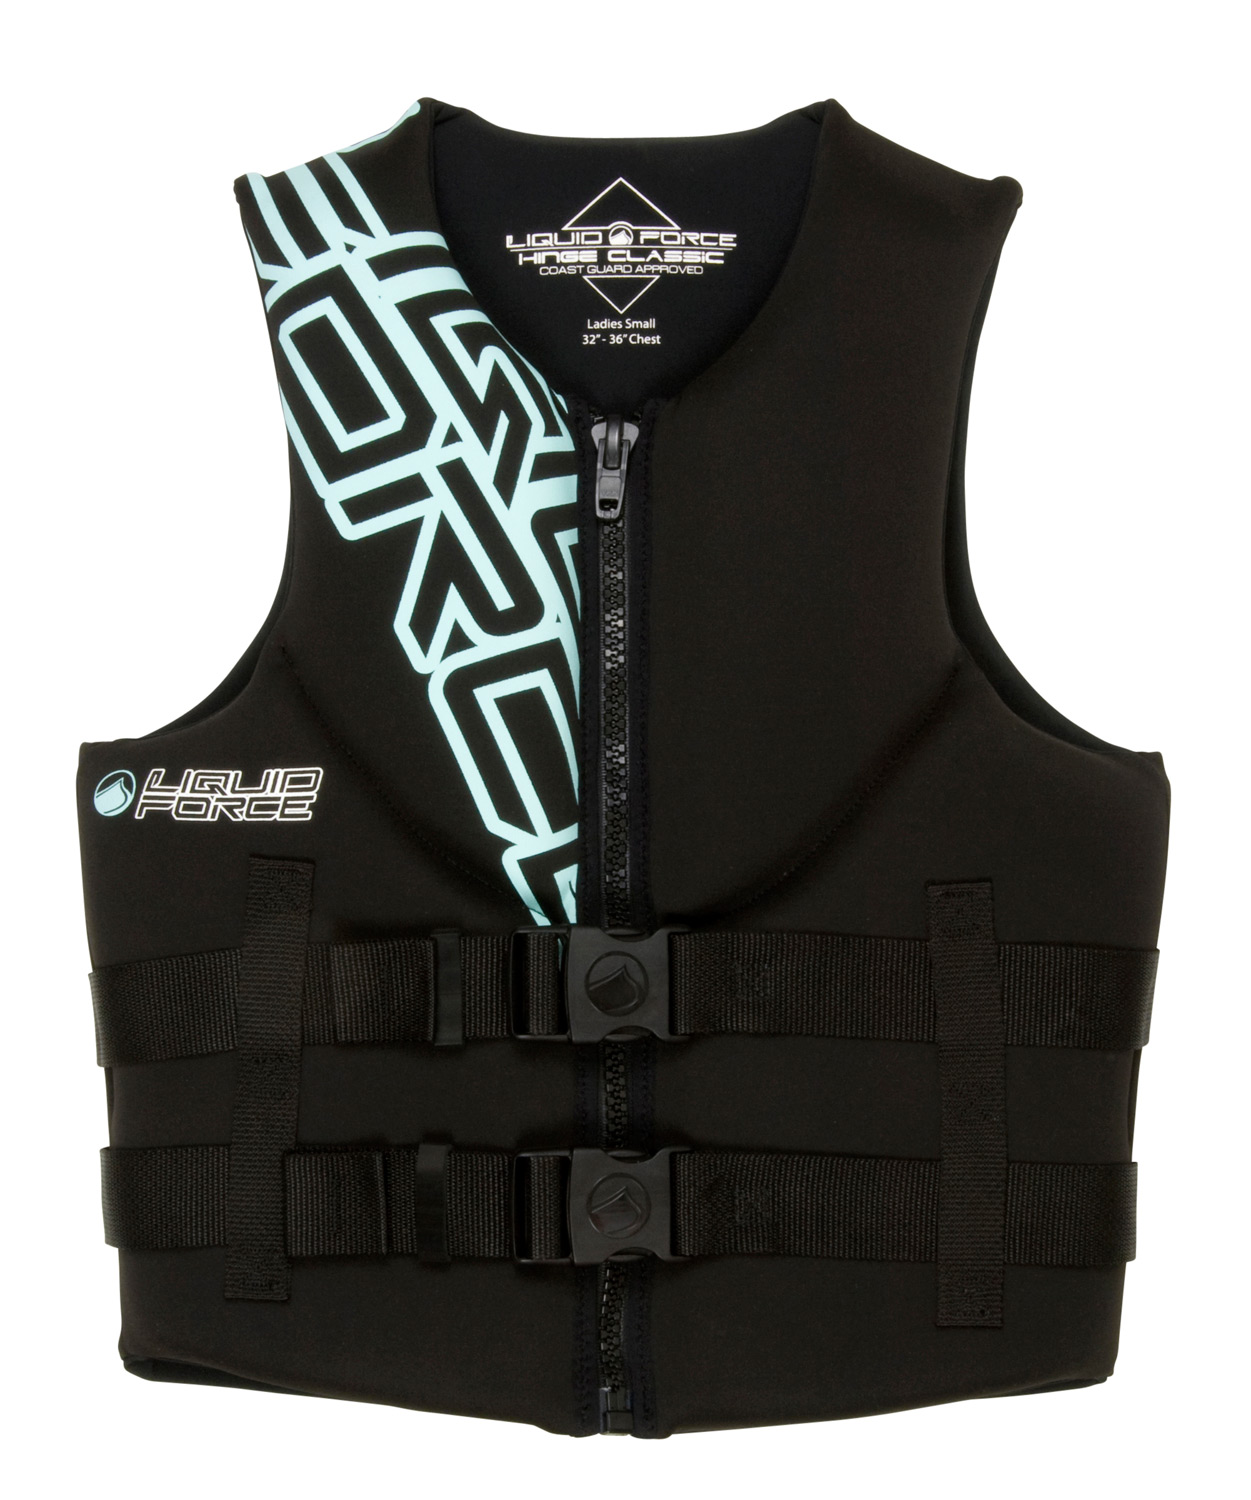 Wake This junior hinge series vest has been extended to the rippers that deserve it the most. Segmented and beveled PVC foam sections allow smaller bodies to reach a new range of motion. There is no doubt that your grom will be stoked that he can now float AND move in this premium CGA vest.Key Features of the Liquid Force Hinge Classic CGA Wakeboard Vest: US Coast Guard Approved: Maximum flotation and safe Segmented Beveled Foam: Rounded independent sections of foam that pivot to offer total mobility Oversized Arm Holes: Extra space and comfort for added mobility Heavy Duty Zipper: Secure, solid hold Hidden Straps: Clean and simple Junior Cut: Styled shorter to move with junior kids - $59.99